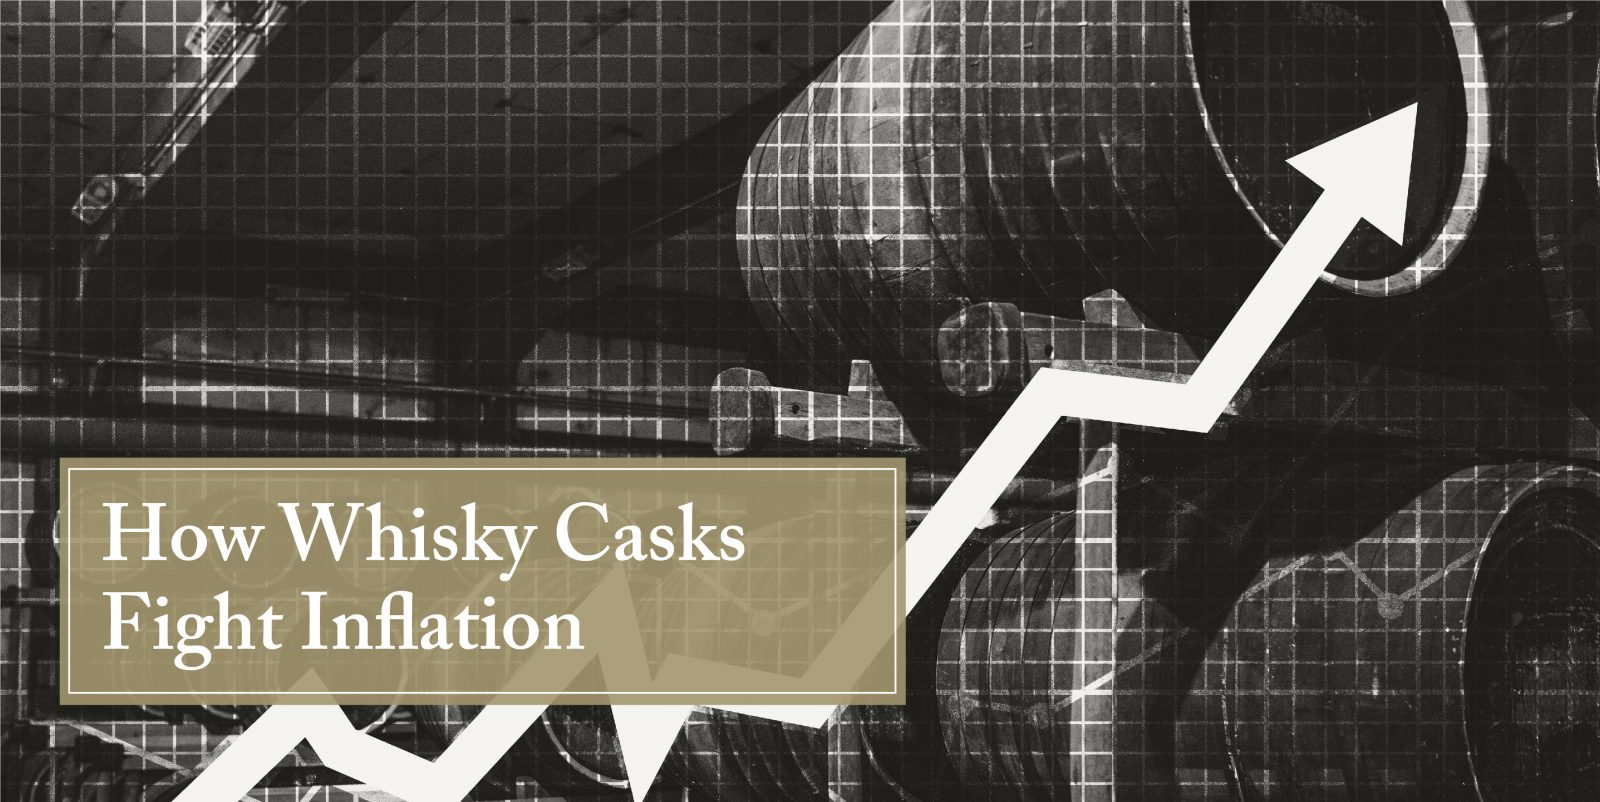 Whisky cask investment and inflation